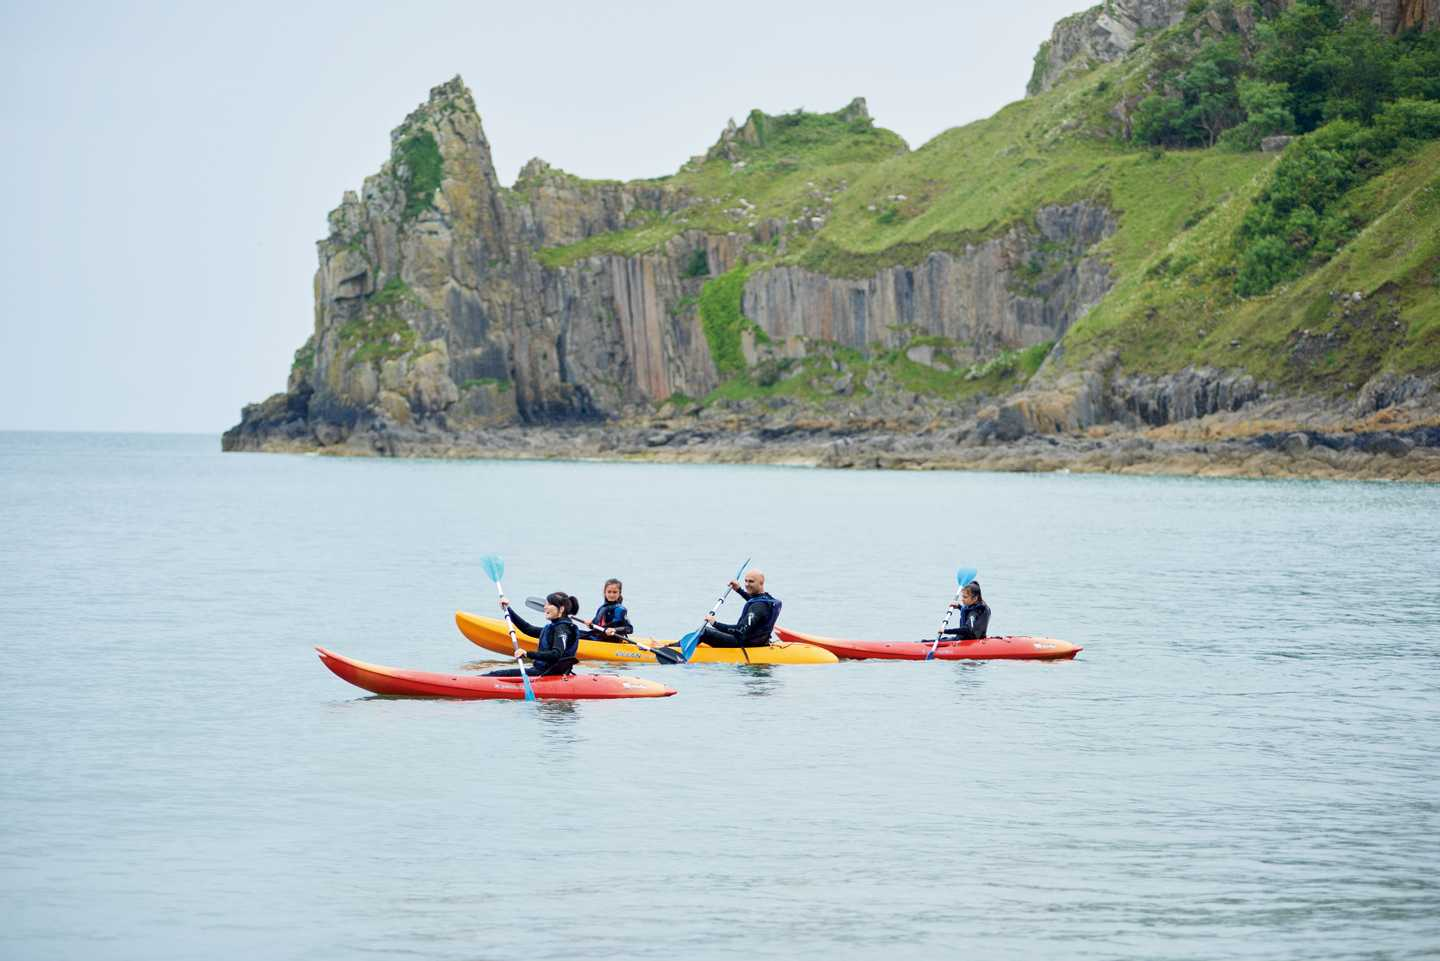 Guests sea kayaking at Lydstep Beach